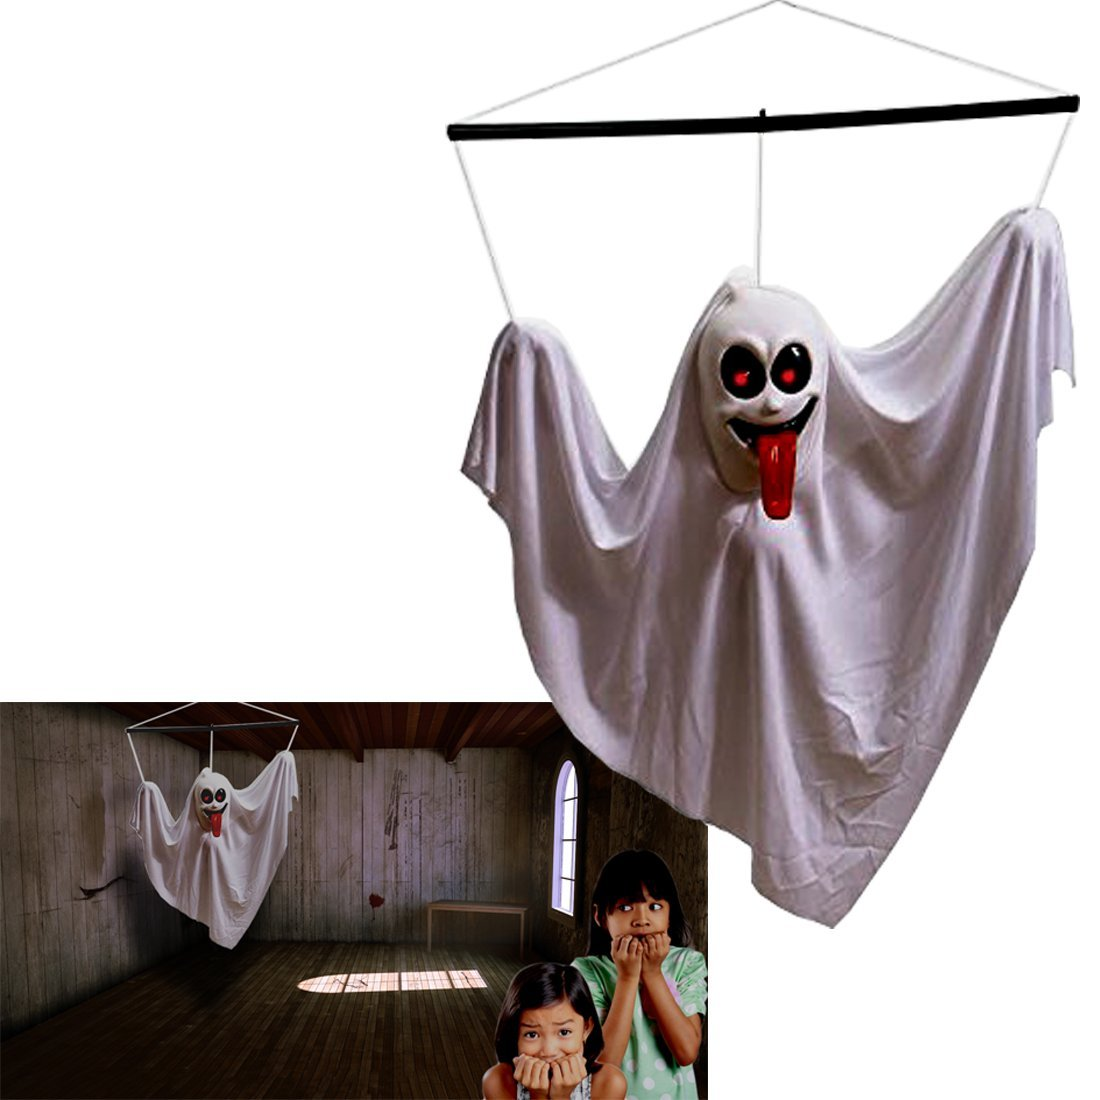 Hanging Ghost | Halloween Animated Shaking Ghost | Hanging Ghost Decoration | White  Shaking Ghost  with Sounds and Flashing Eyes | Dazzling Toys